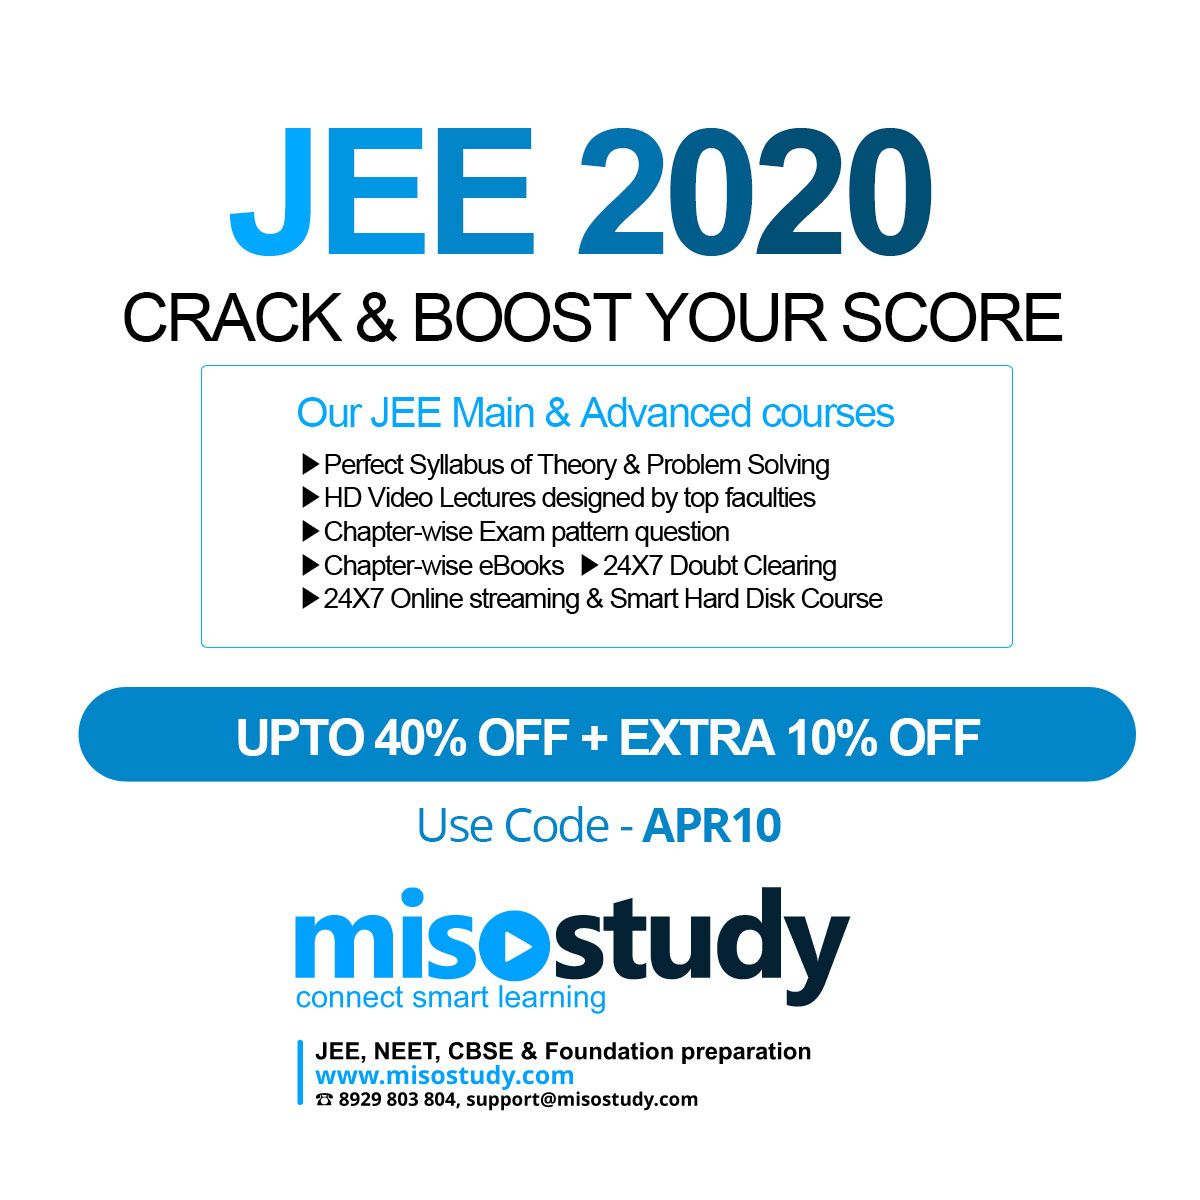 Jee Main Advanced Neet Cbse Online Courses Upto 40 Off Lectures Design Online Streaming